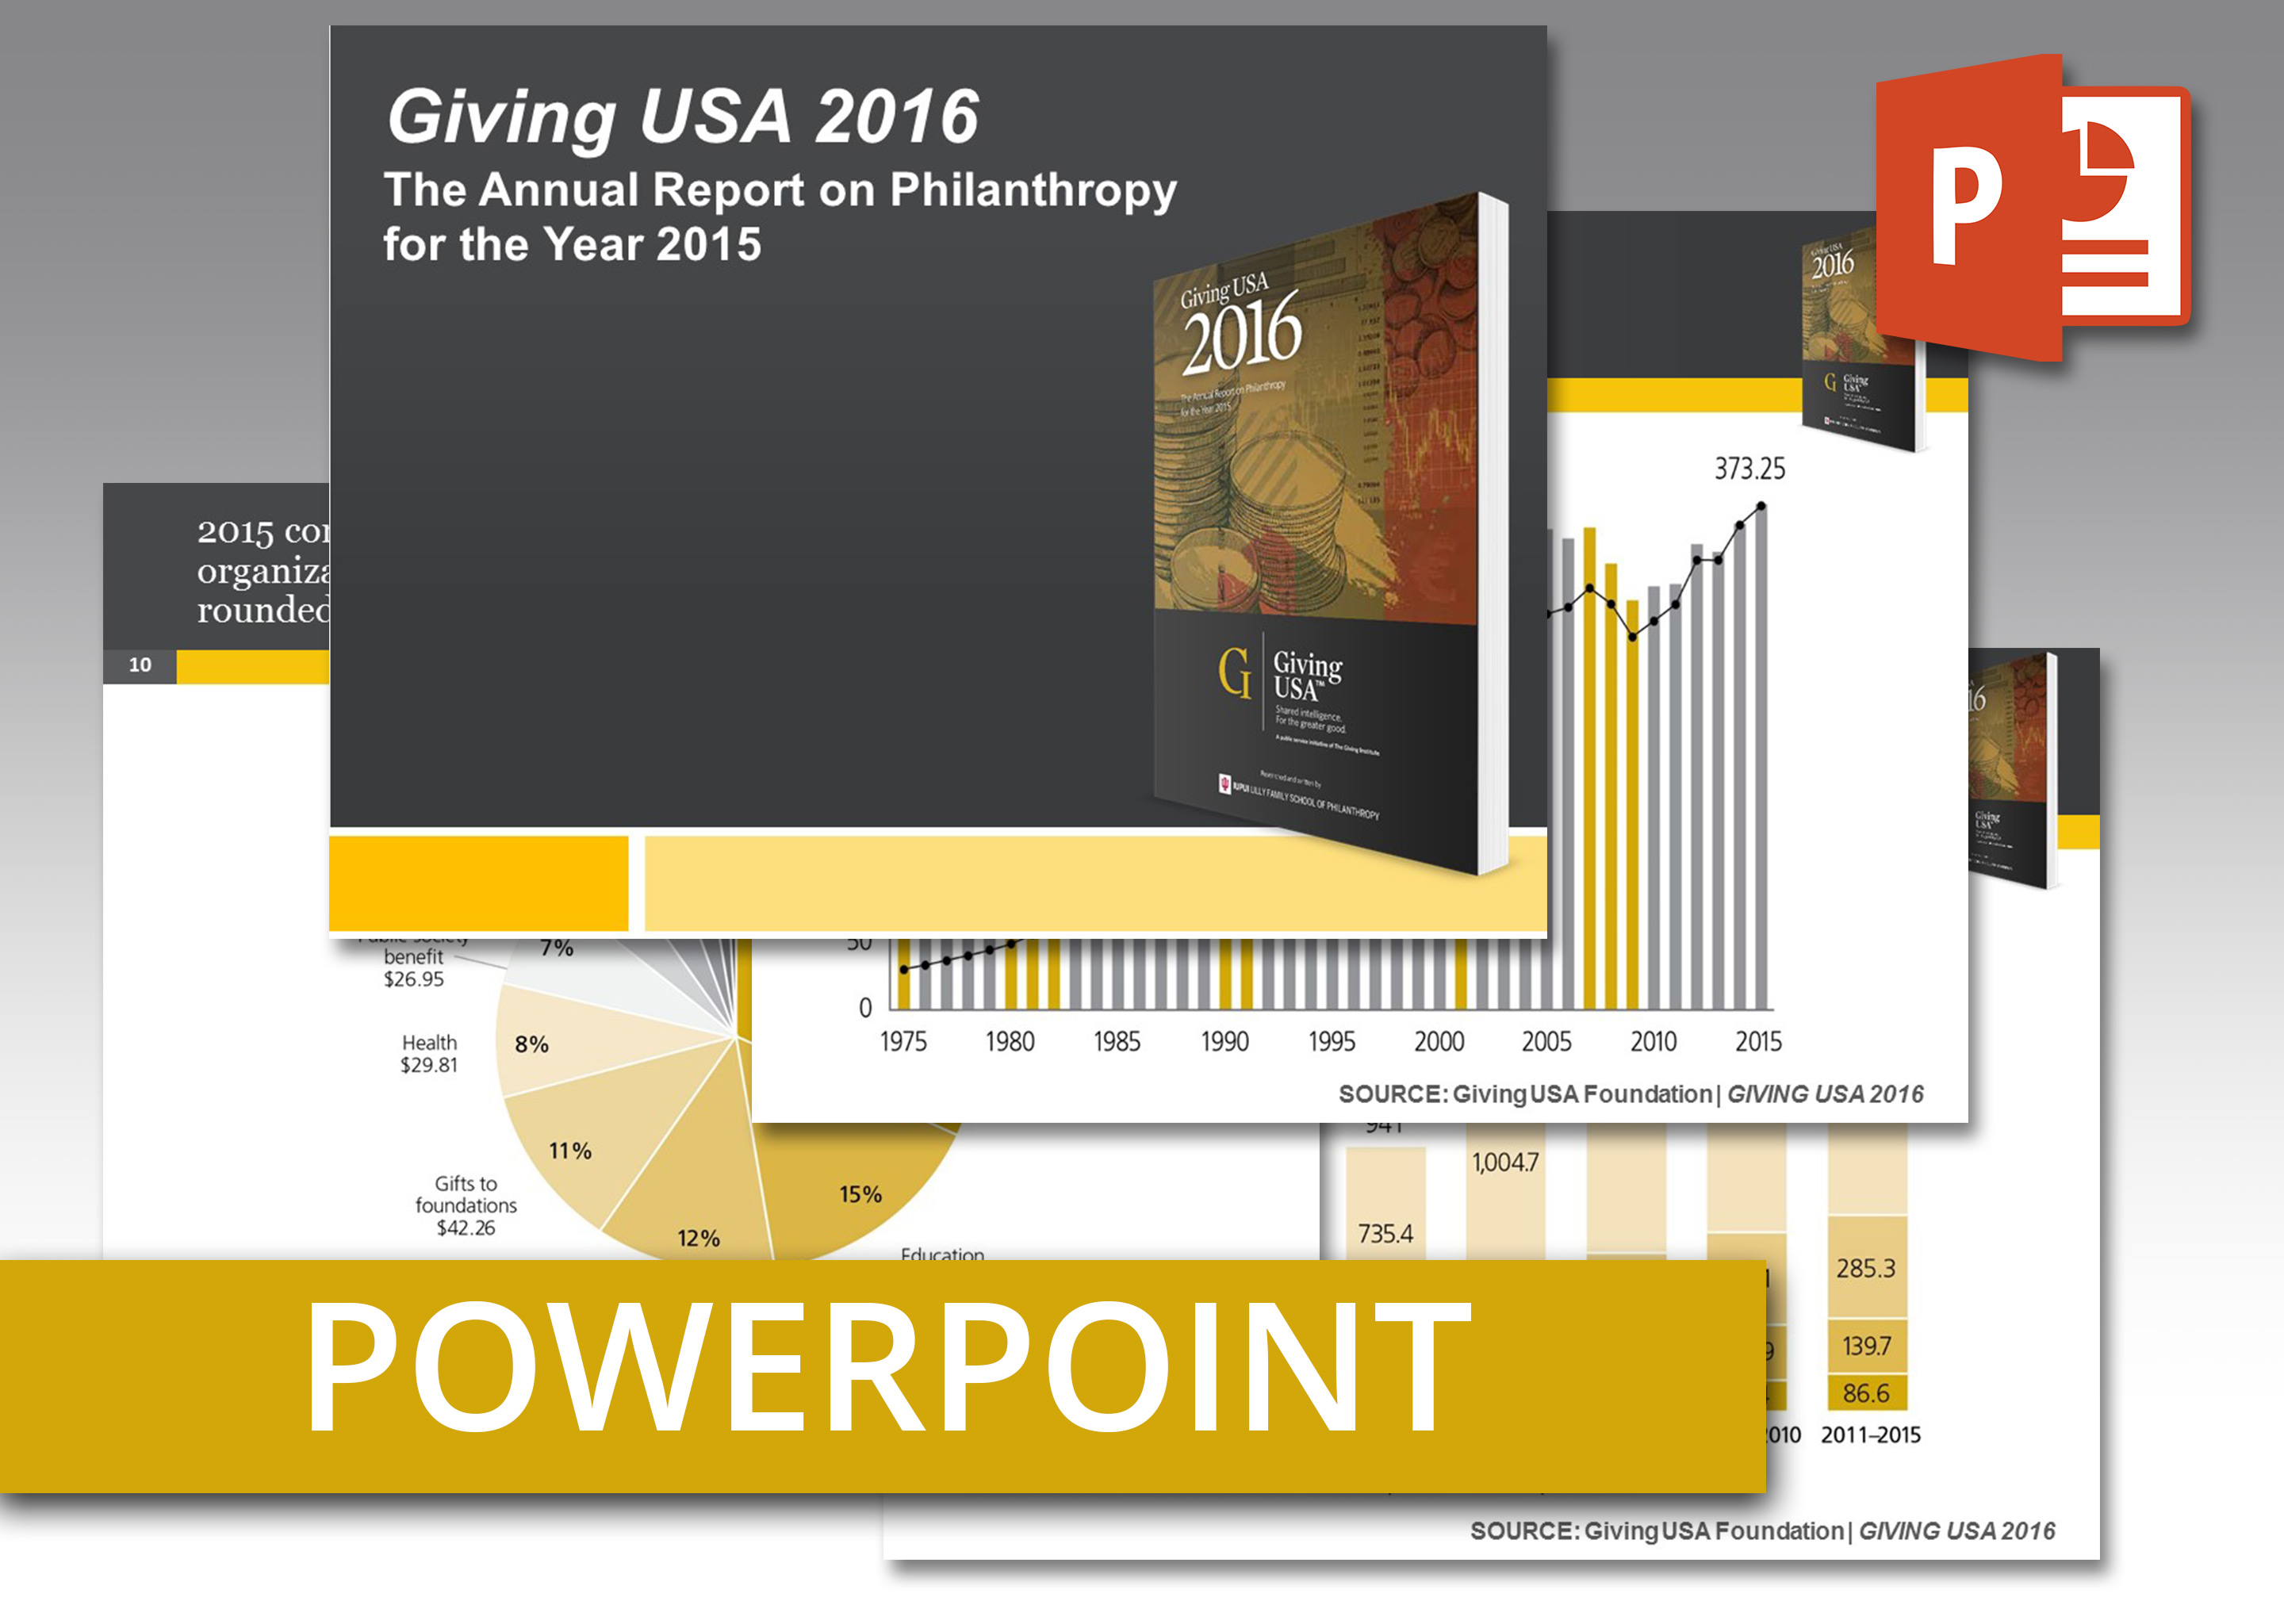 Coolmathgamesus  Pleasing Giving Usa  Powerpoint An Easytouse Presentation Of Report  With Handsome Giving Usa  Powerpoint An Easytouse Presentation Of Report Findings Including Talking Points With Alluring Social Justice Powerpoint Also Using Quotation Marks Powerpoint In Addition Powerpoint Game Shows And Product Key For Powerpoint  As Well As Google Translate Powerpoint Additionally How To Make Org Chart In Powerpoint From Givingusaorg With Coolmathgamesus  Handsome Giving Usa  Powerpoint An Easytouse Presentation Of Report  With Alluring Giving Usa  Powerpoint An Easytouse Presentation Of Report Findings Including Talking Points And Pleasing Social Justice Powerpoint Also Using Quotation Marks Powerpoint In Addition Powerpoint Game Shows From Givingusaorg